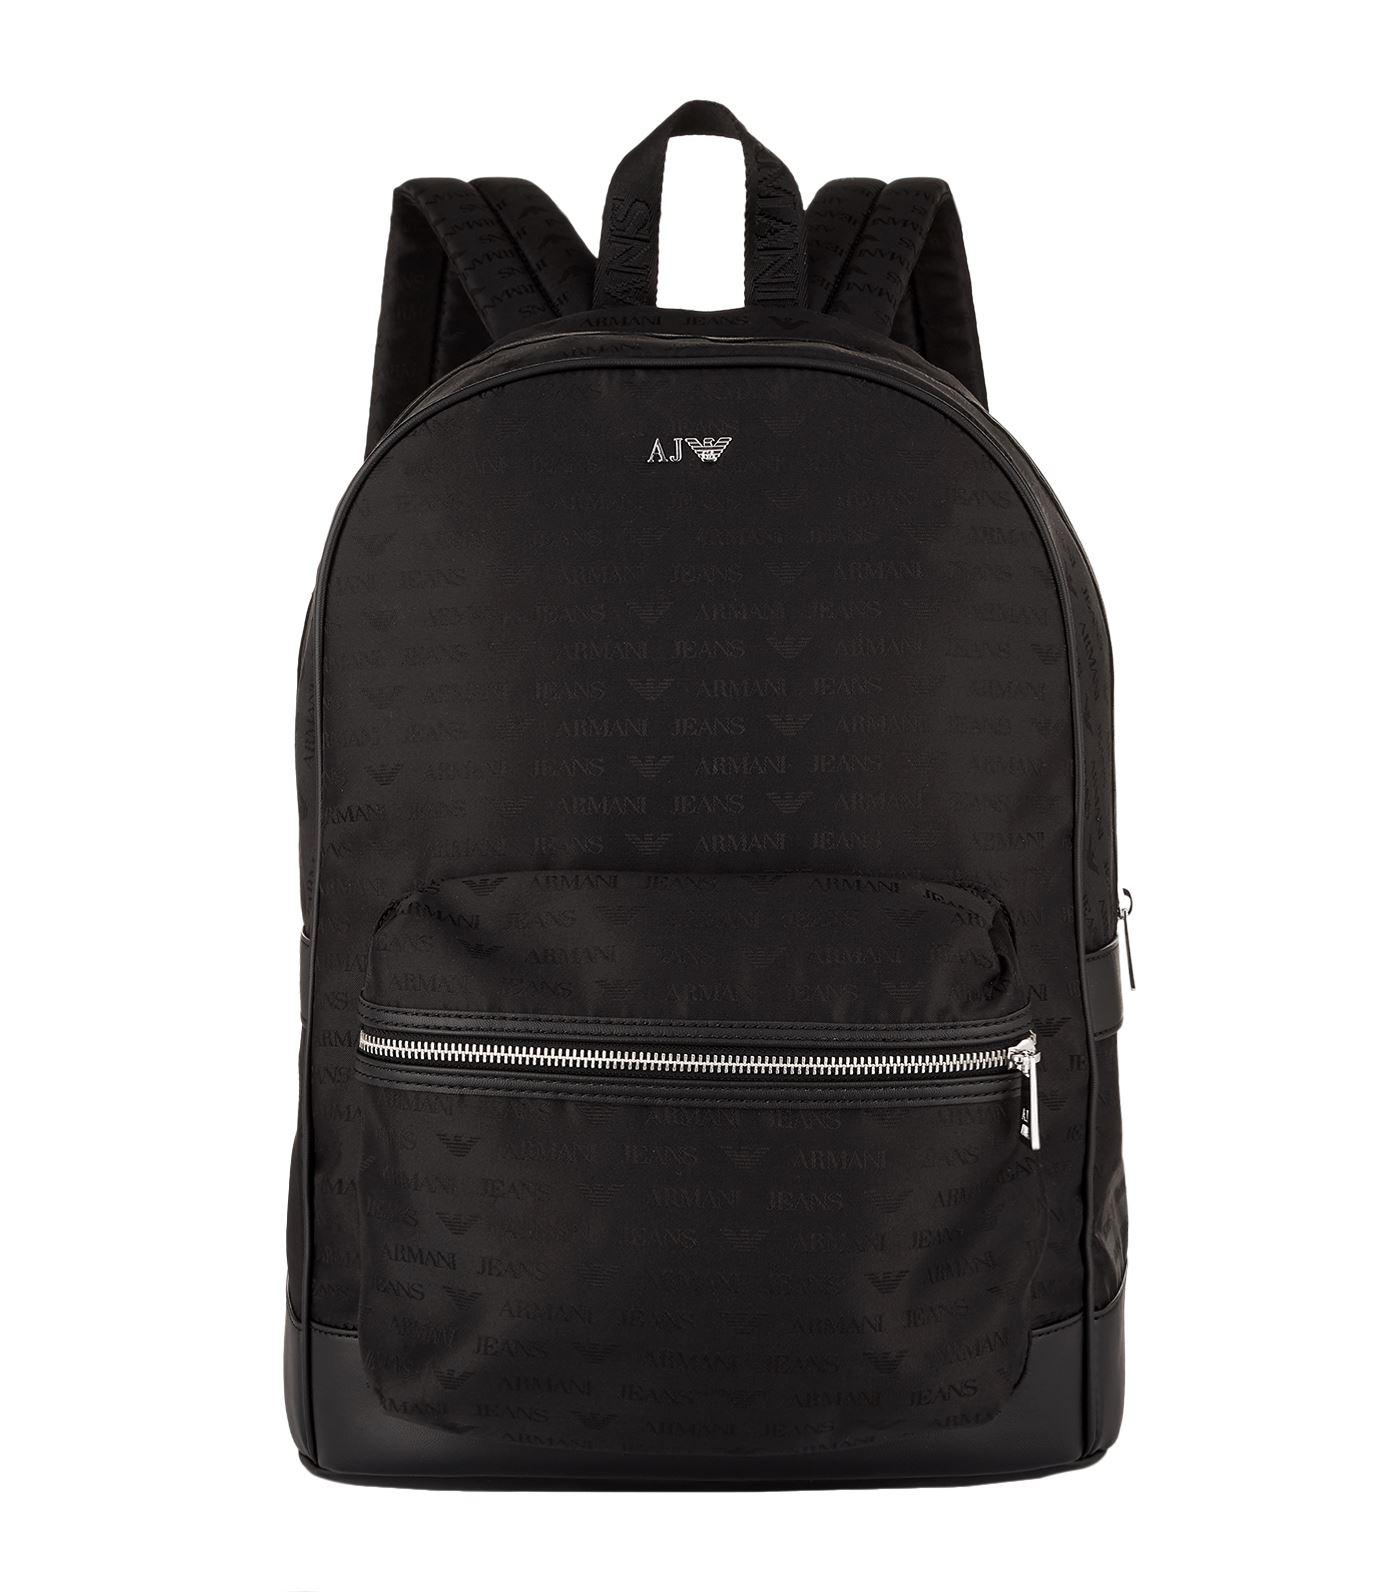 78ee1ec85e91 Armani Jeans Tonal Logo Backpack in Black for Men - Lyst